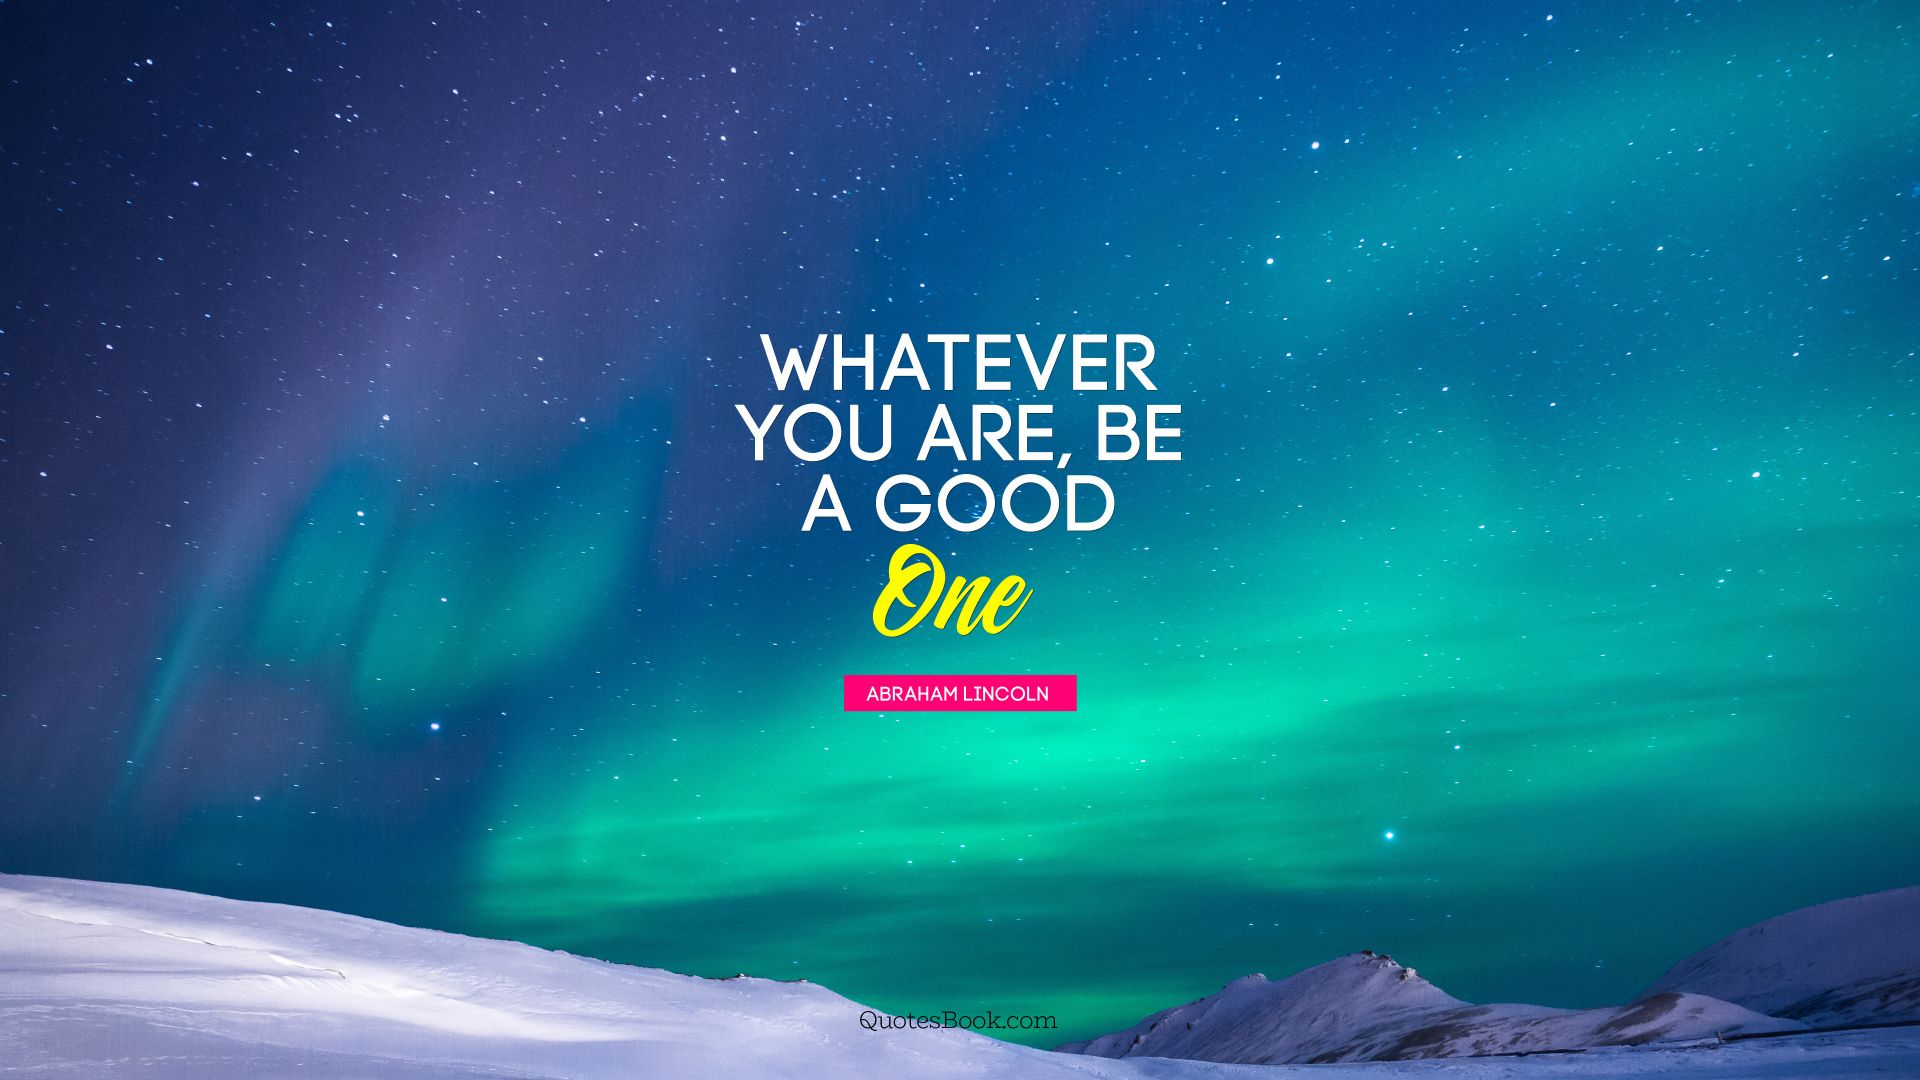 Whatever you are, be a good one. - Quote by Abraham Lincoln